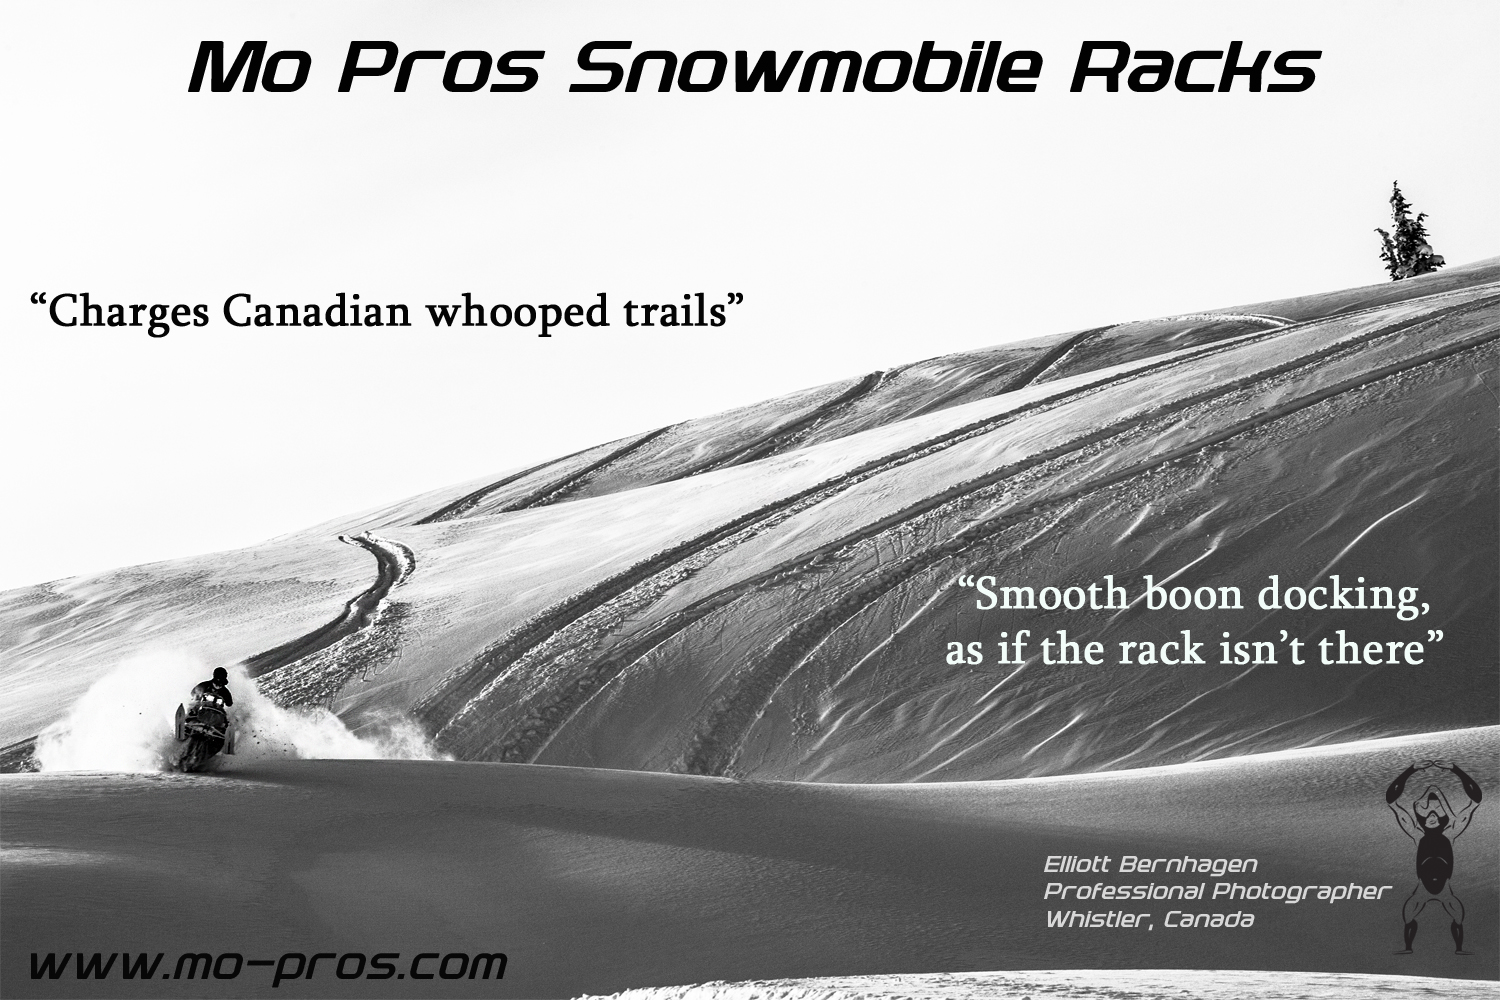 The Mo Pros Snowmobile Rack is competitive because it changes into a snowmobile ski rack and snowmobile snowboard rack. Polaris snowmobile integration is simple, but Ski-Doo is also well accommodated as we live in a very backcountry united atmosphere, including cheetah factory racing.